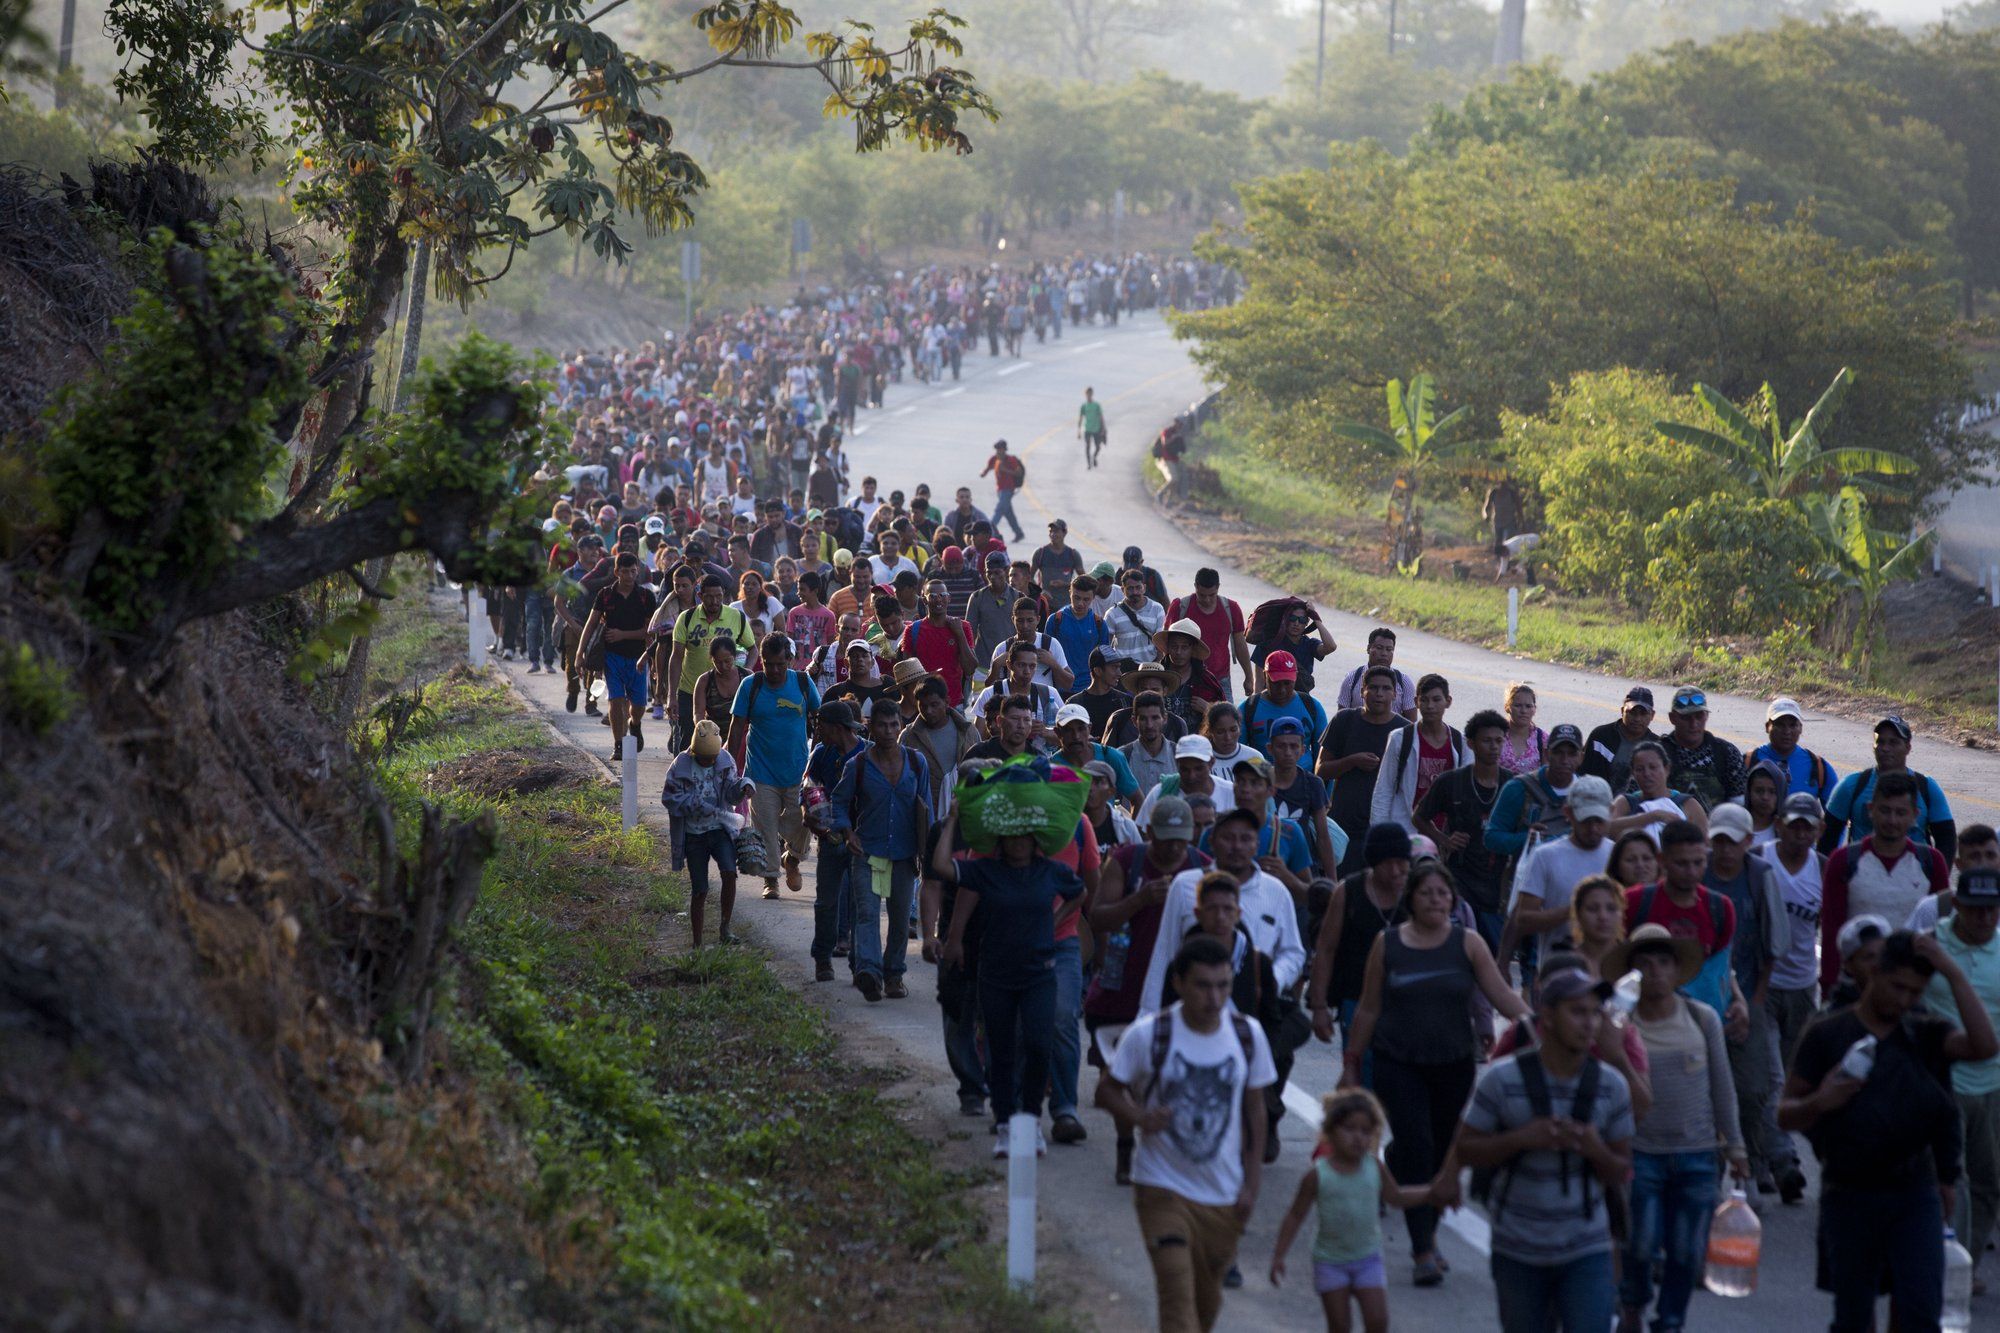 Frustration grows among migrants in Mexico as support fades